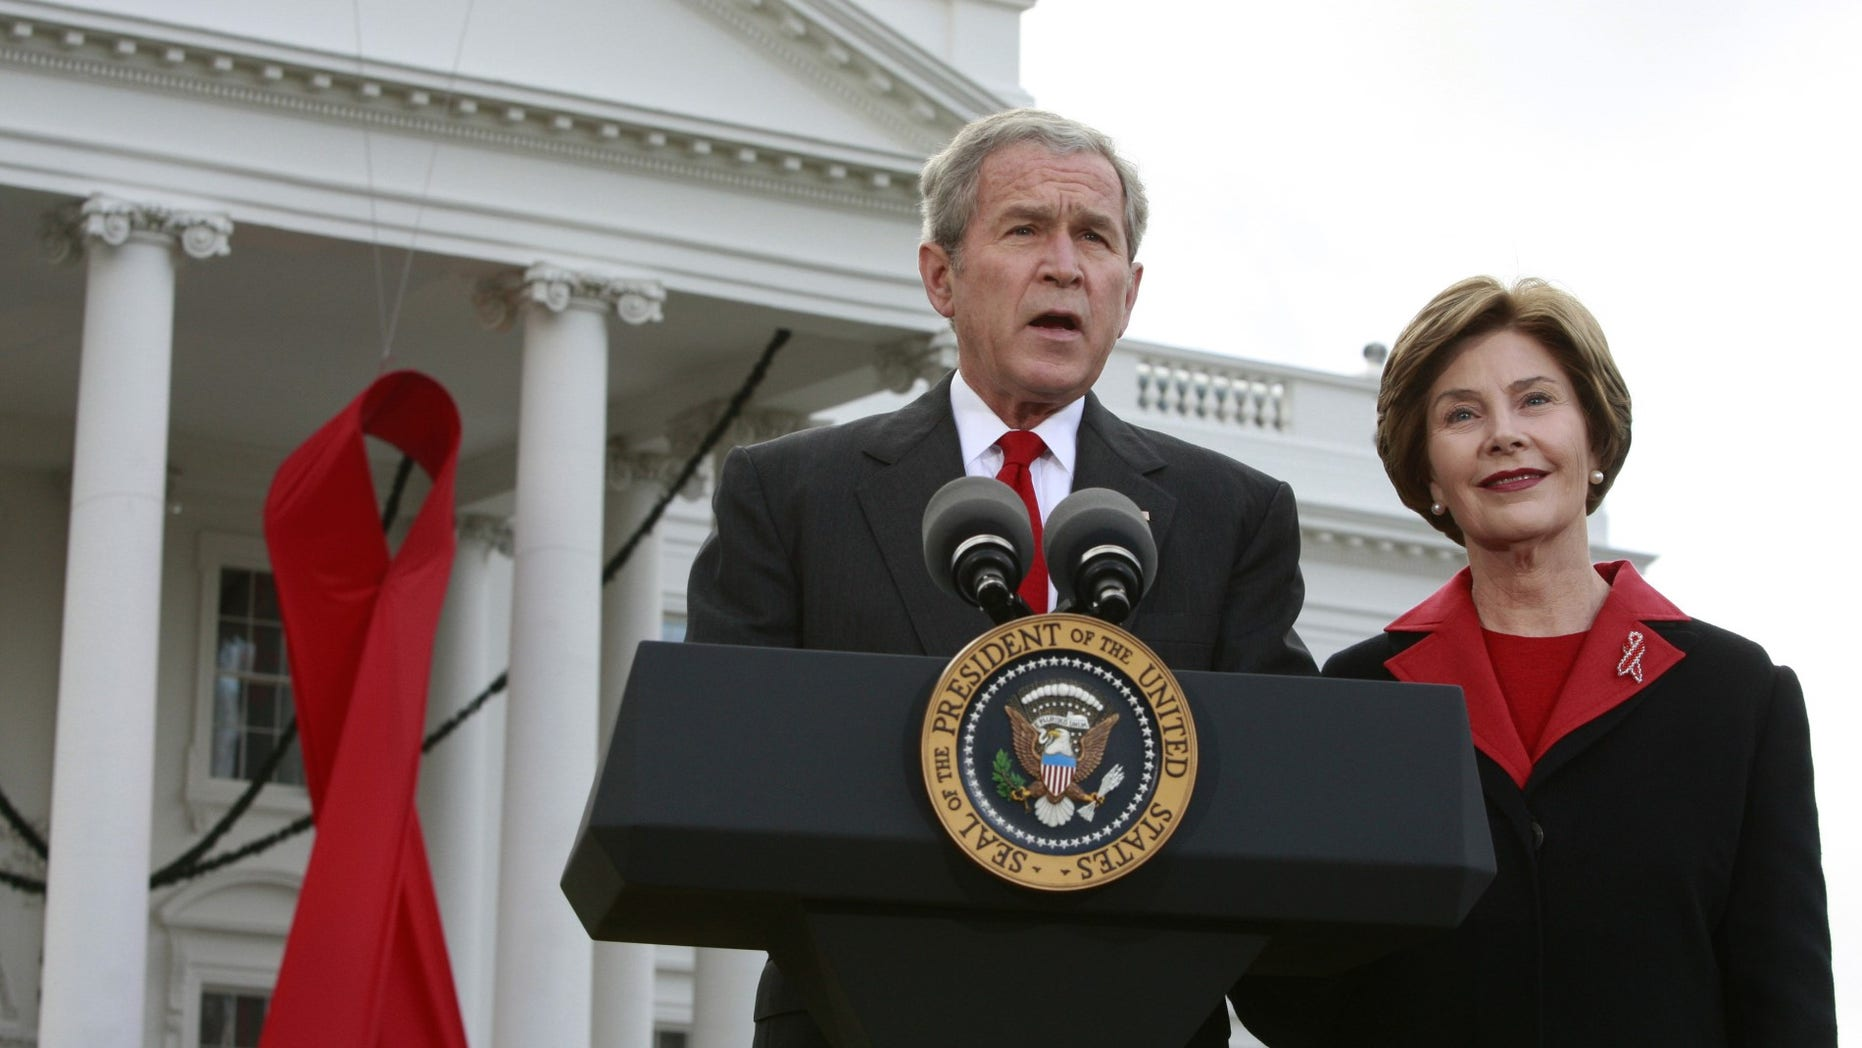 FILE -- Former President George W. Bush speaks alongside a giant red AIDS ribbon on the occasion of World AIDS day with first lady Laura Bush on the North Lawn of the White House in Washington December 1, 2008.